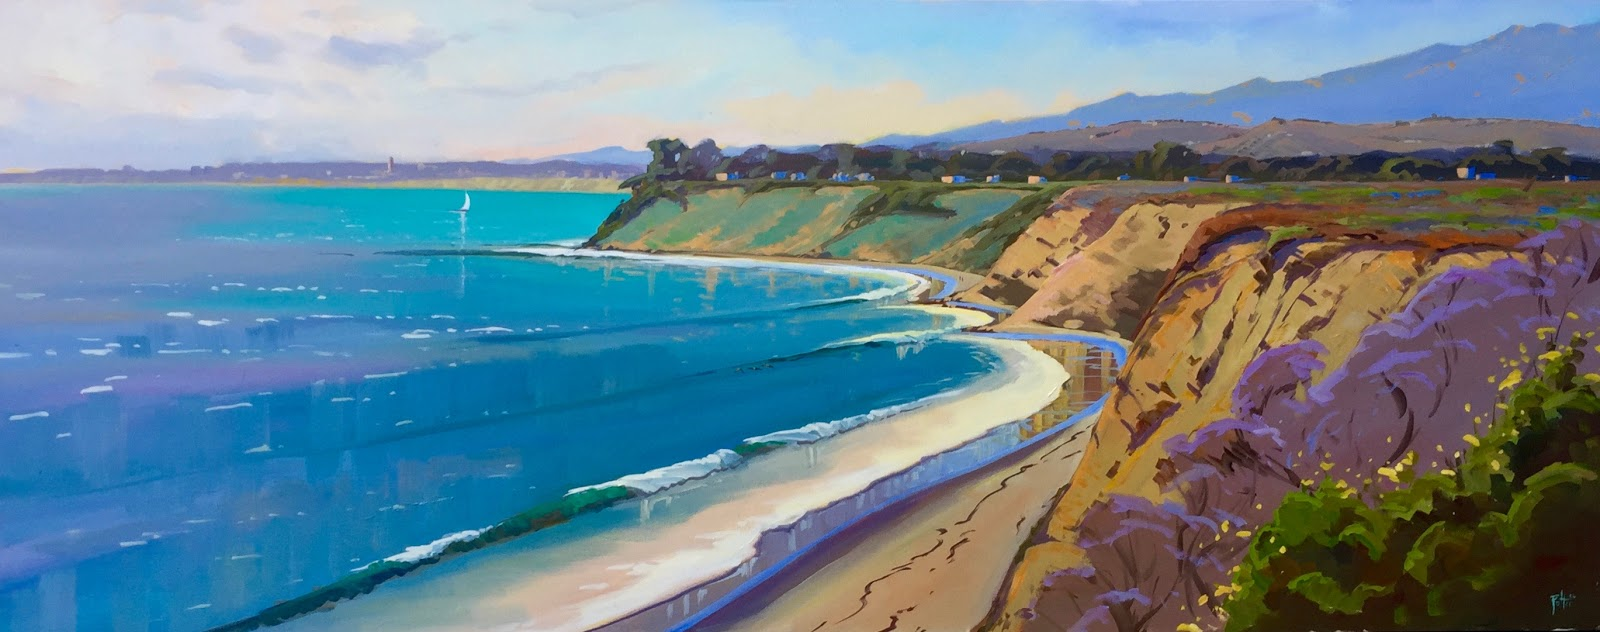 postcards from santa barbara a daily painting project by plein air artist chris potter. Black Bedroom Furniture Sets. Home Design Ideas